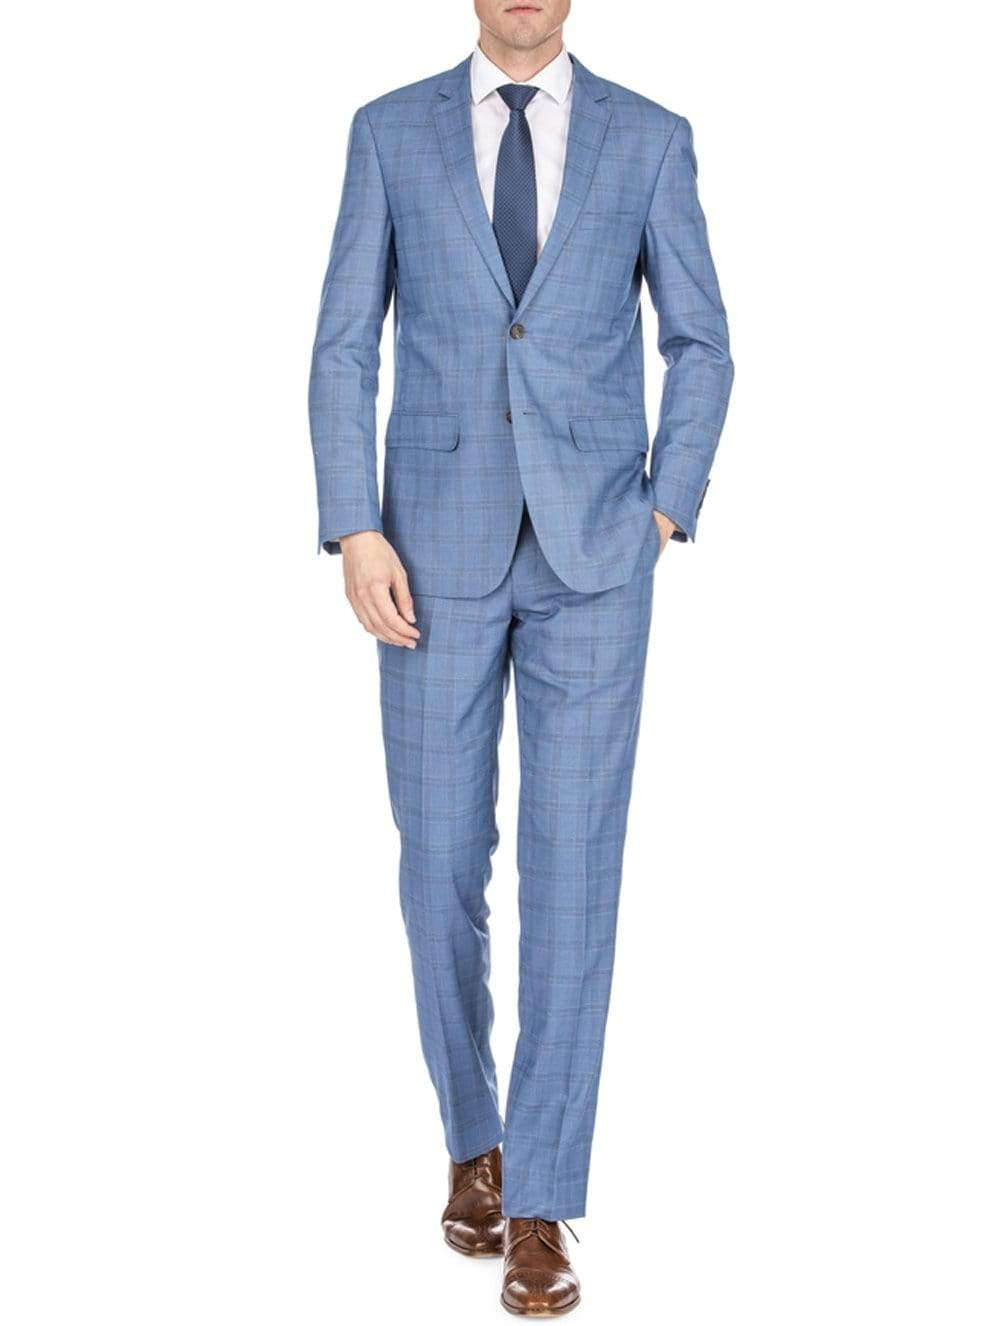 DAILY HAUTE Men's Suits LIGHT BLUE / 36Rx30W Gino Vitale Men's Traveler Check Slim Fit Suits